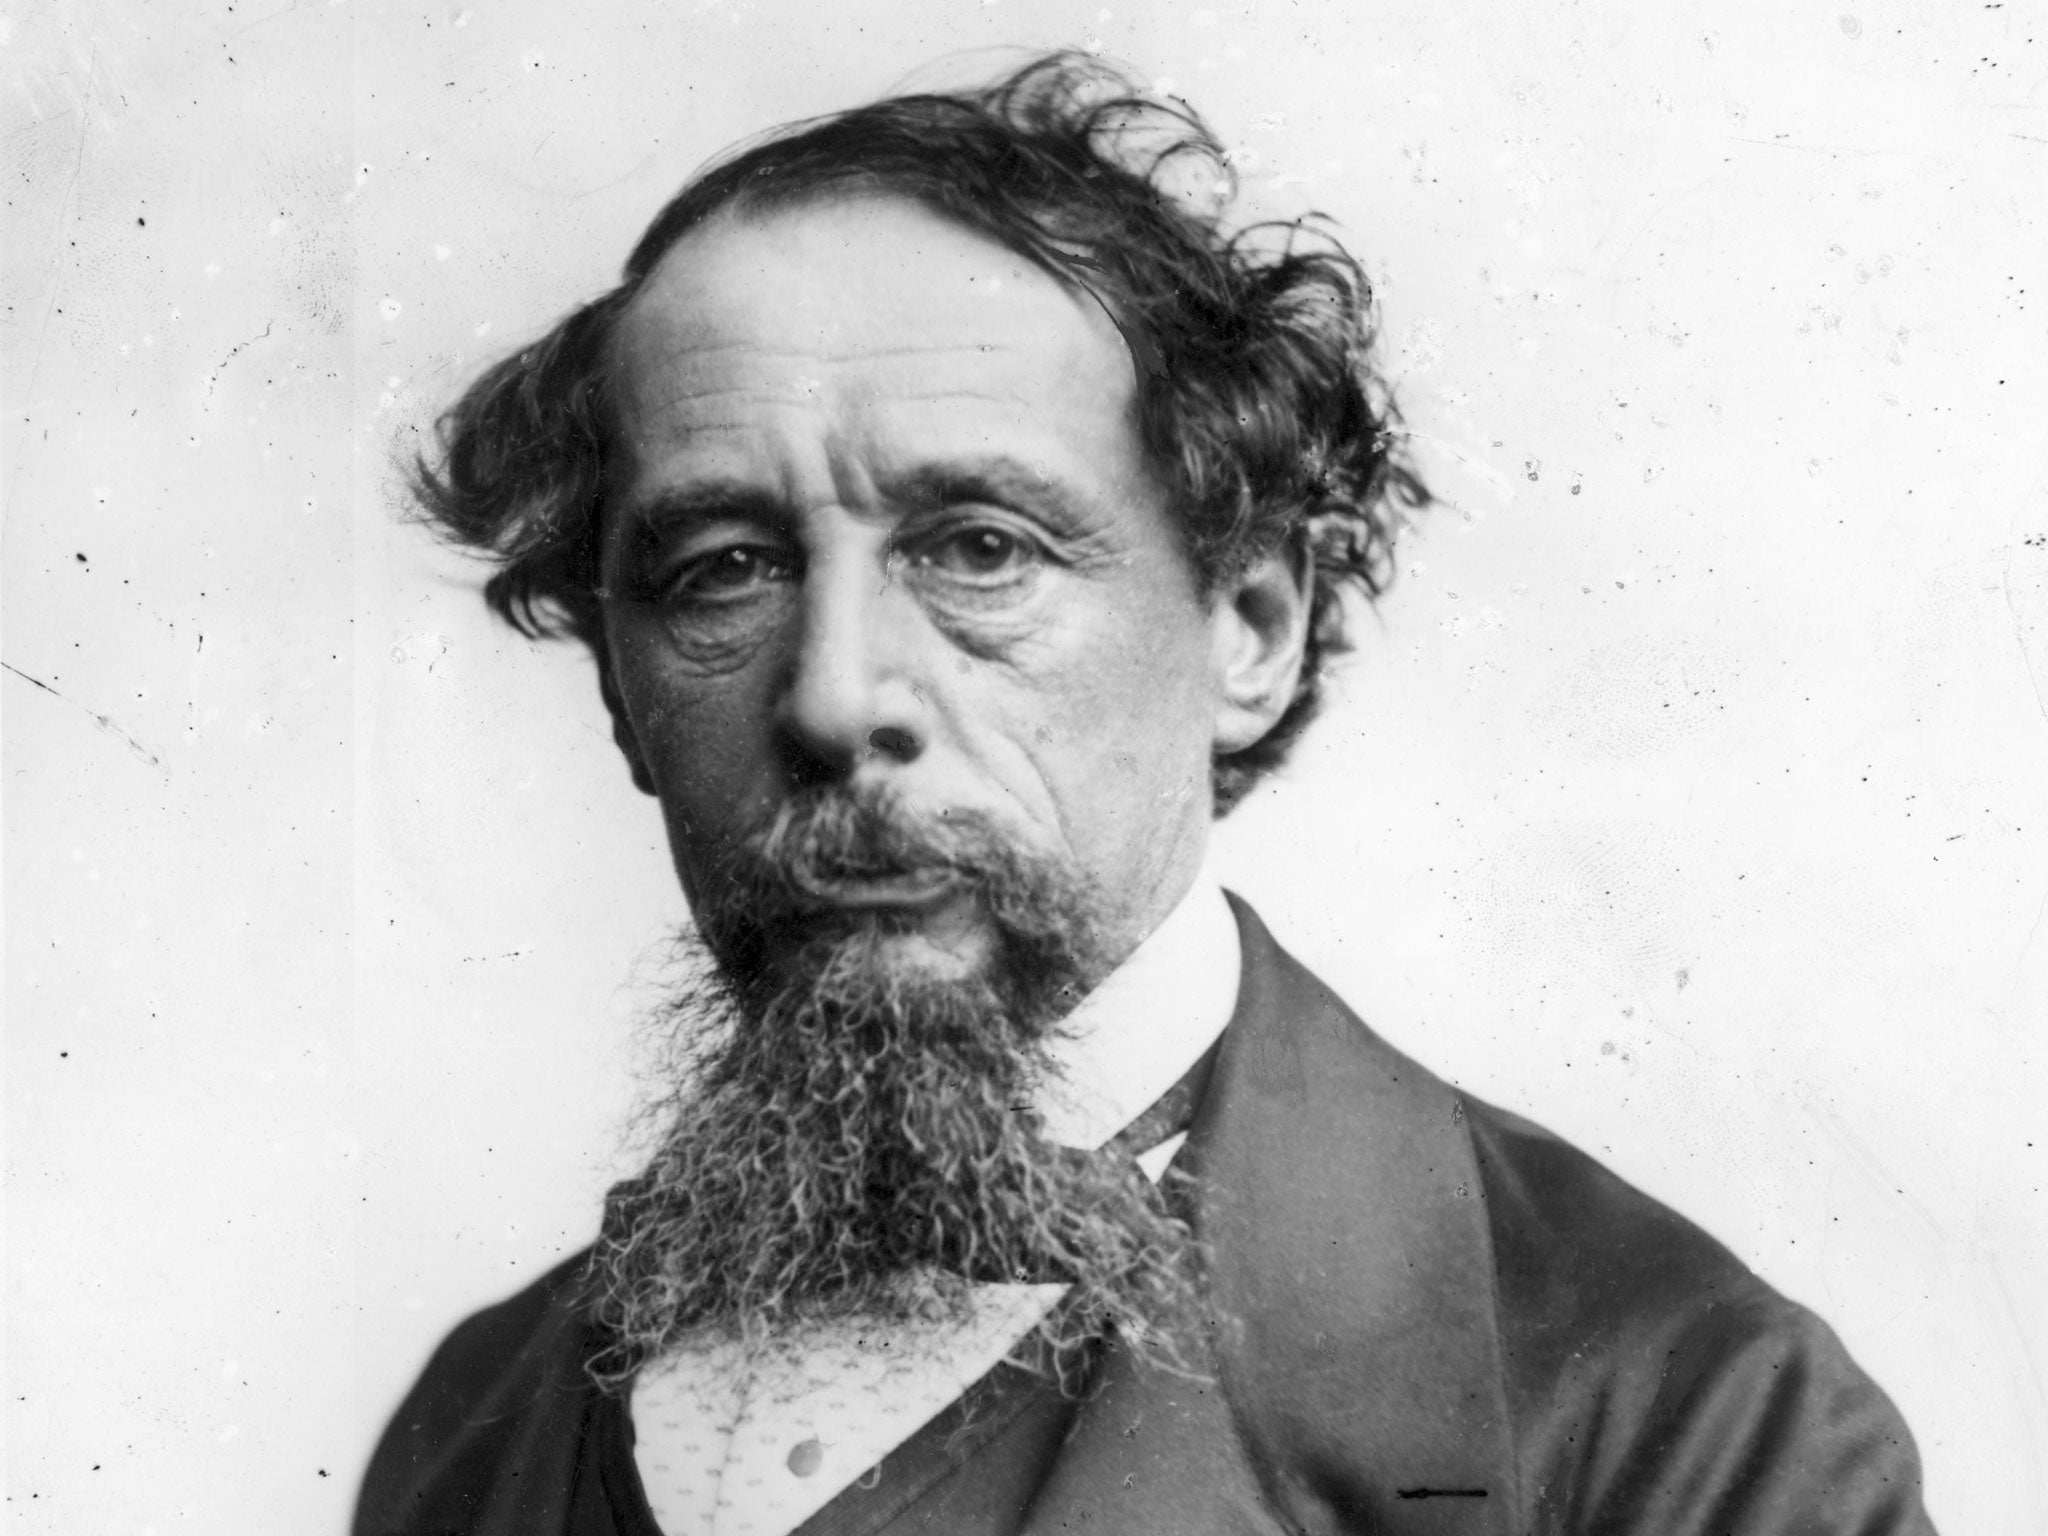 the unseen charles dickens the excoriating essay on the unseen charles dickens the excoriating essay on victorian poverty that no one knew he had written the